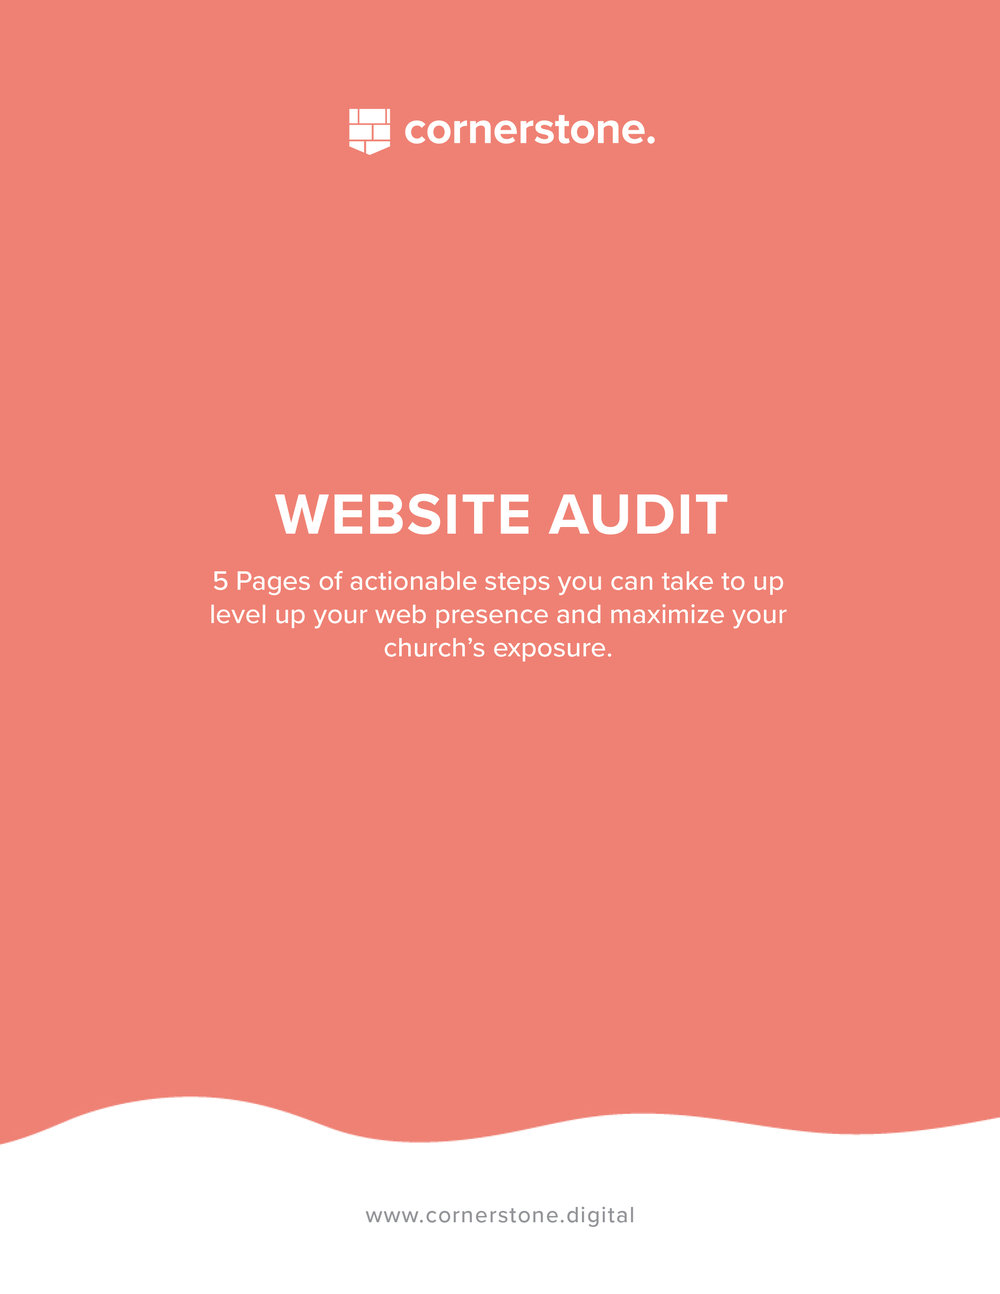 Website Audit - 5 Pages of actionable steps you can take to up level up your web presence and maximize your church's exposure.